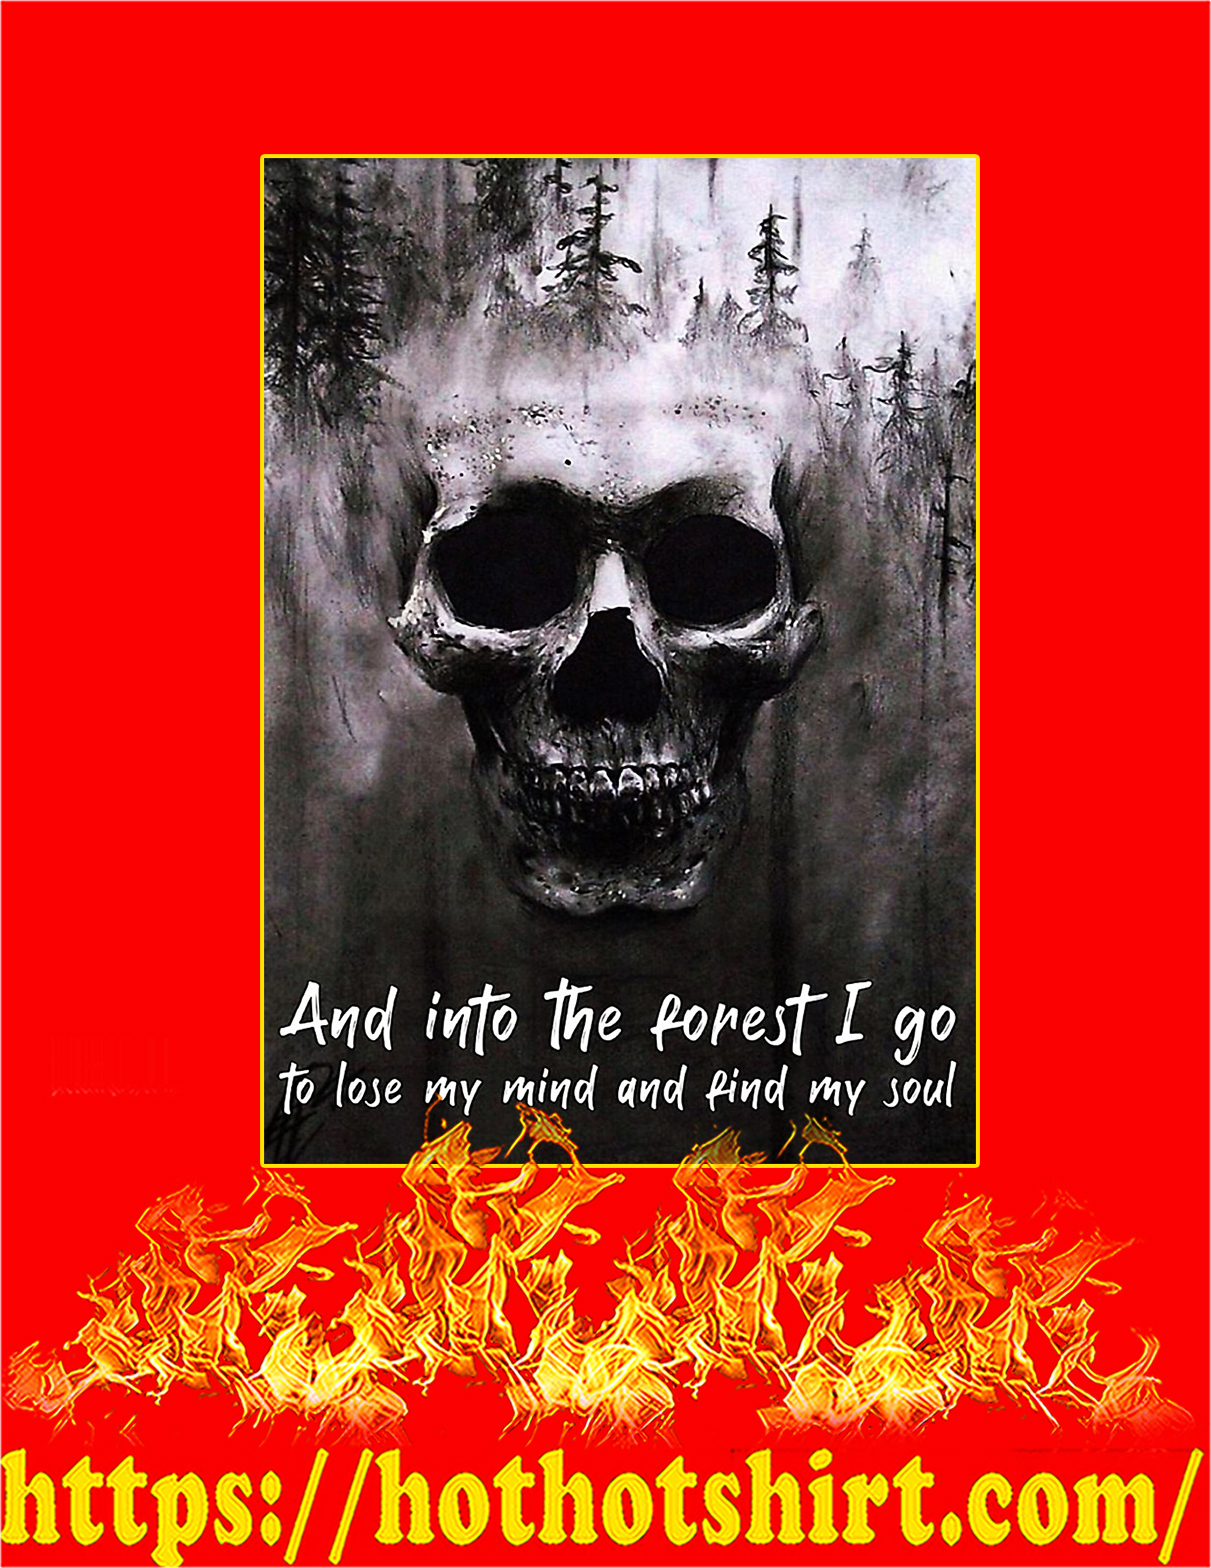 Skull and into the forest I go to lose my mind and find my soul poster - A4